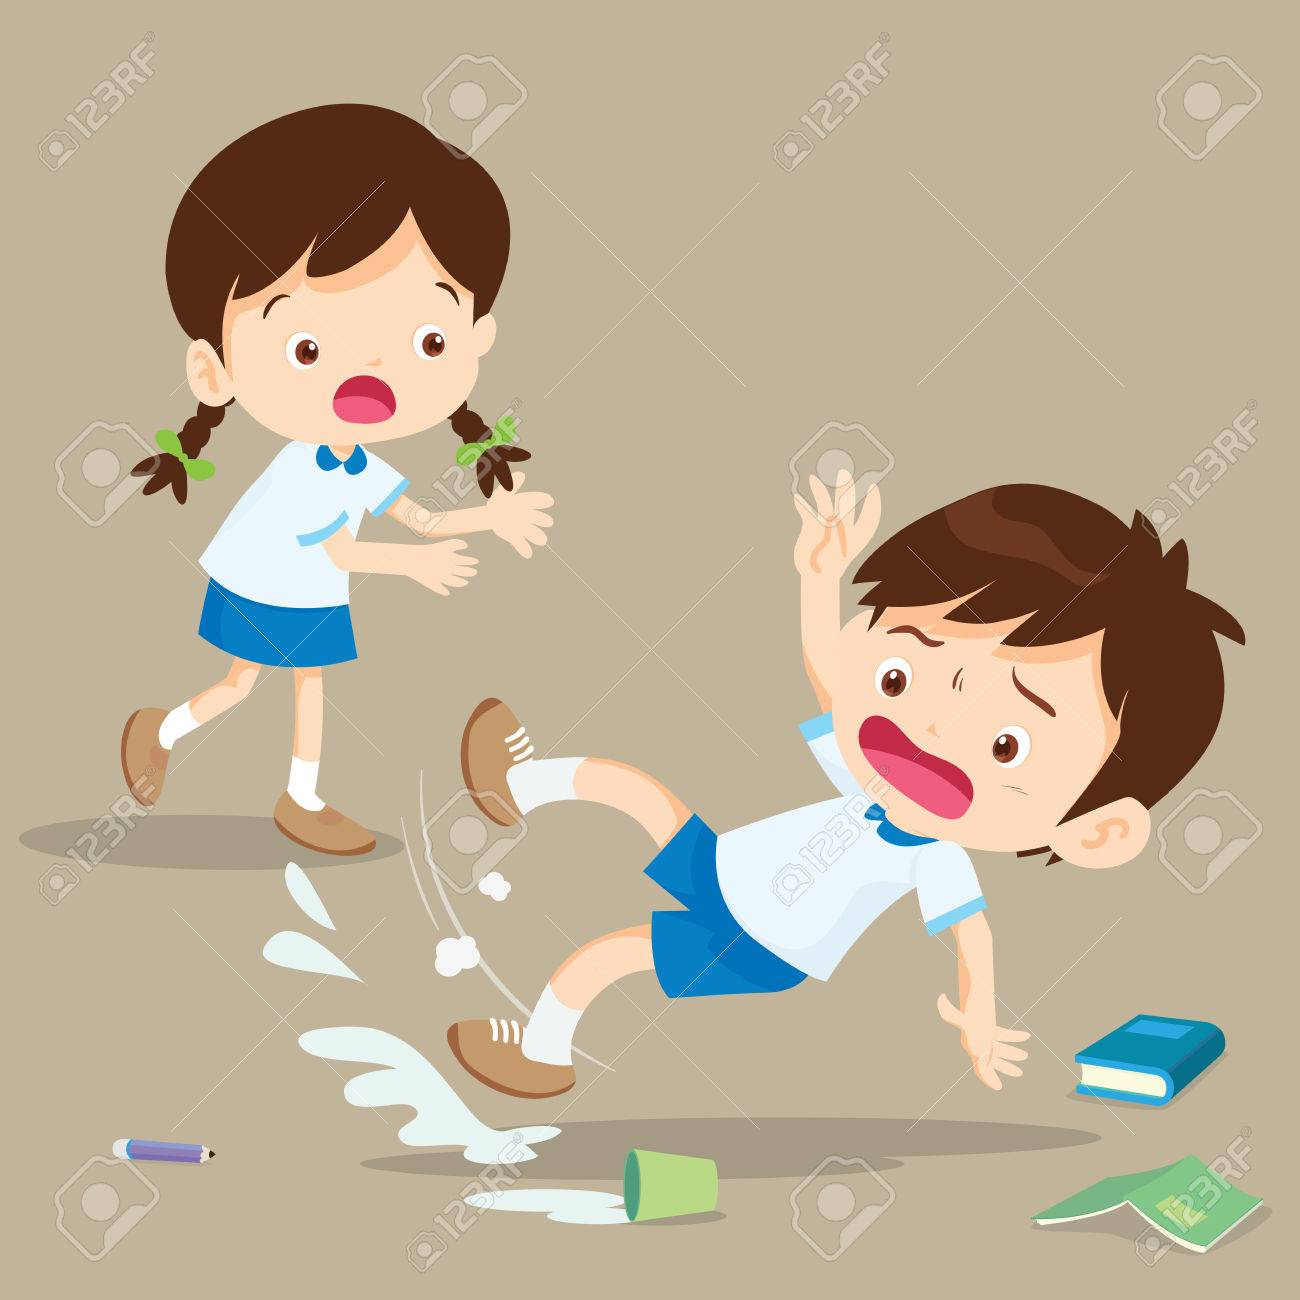 student boy falling on wet floor.Pupil looking at her friend falling. - 80631907